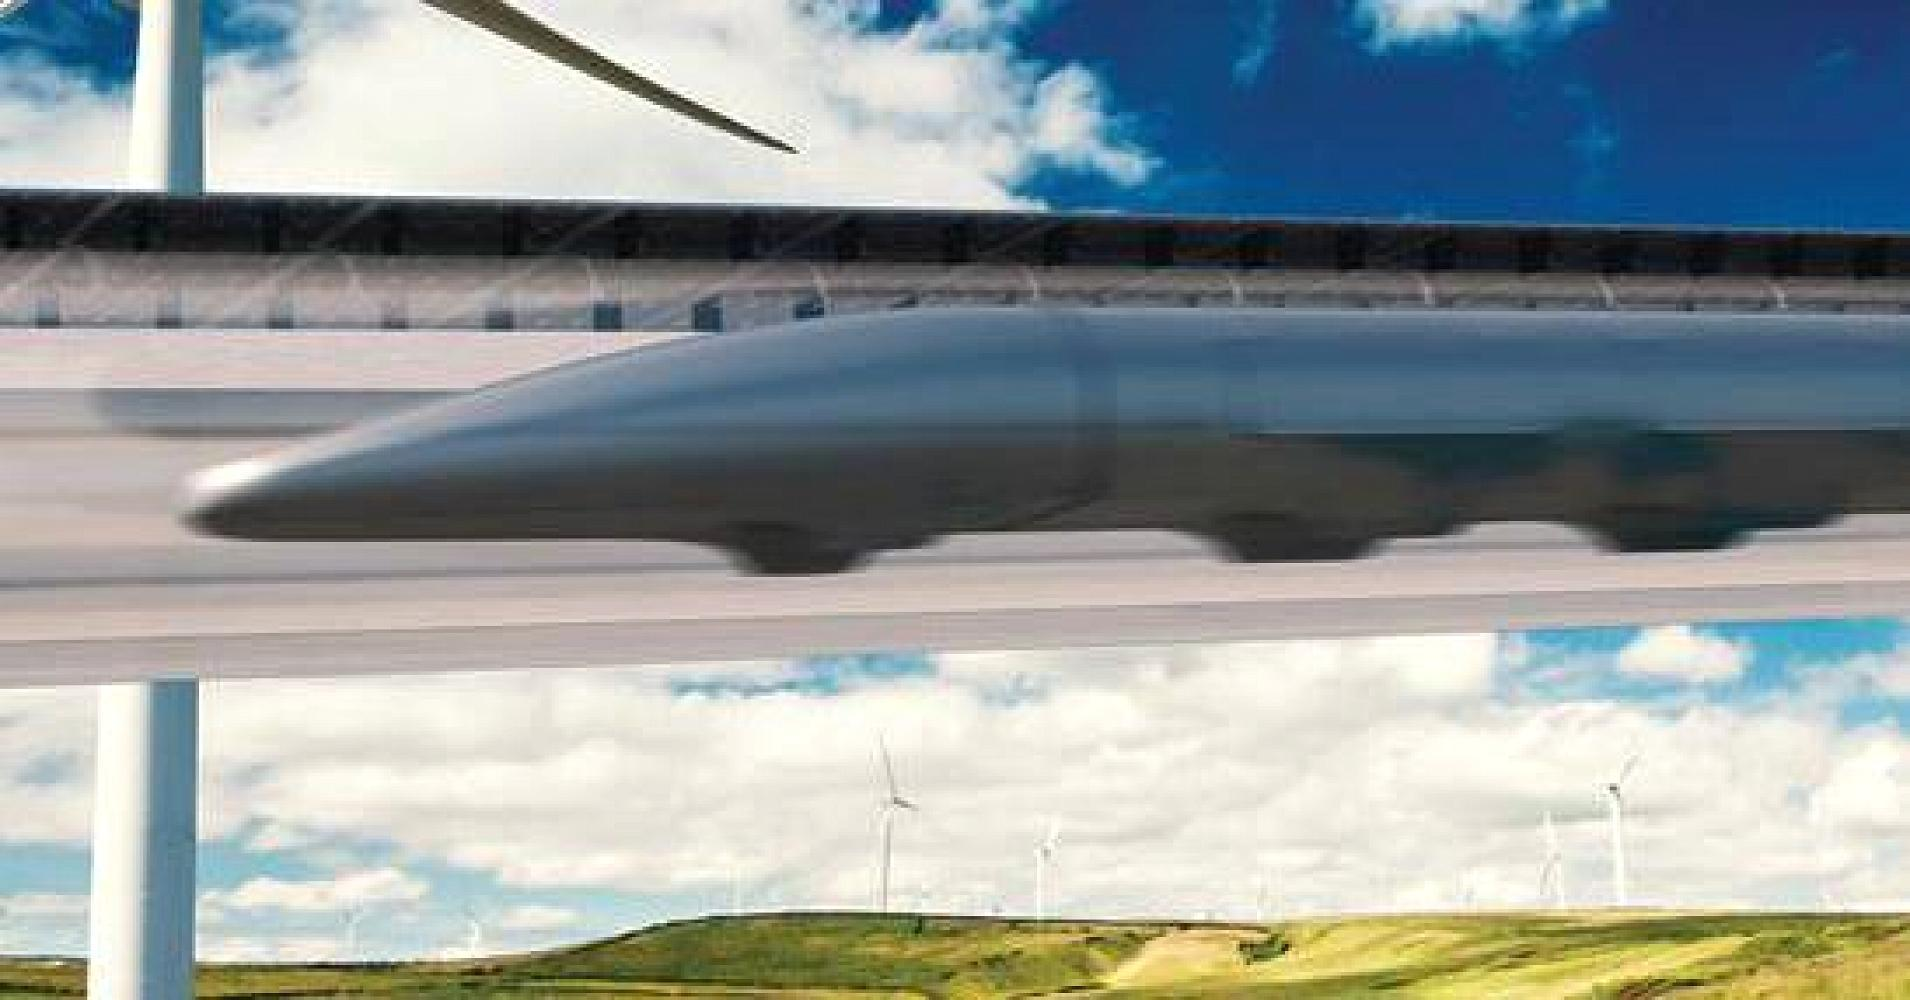 Musk's Hyperloop moves closer to reality